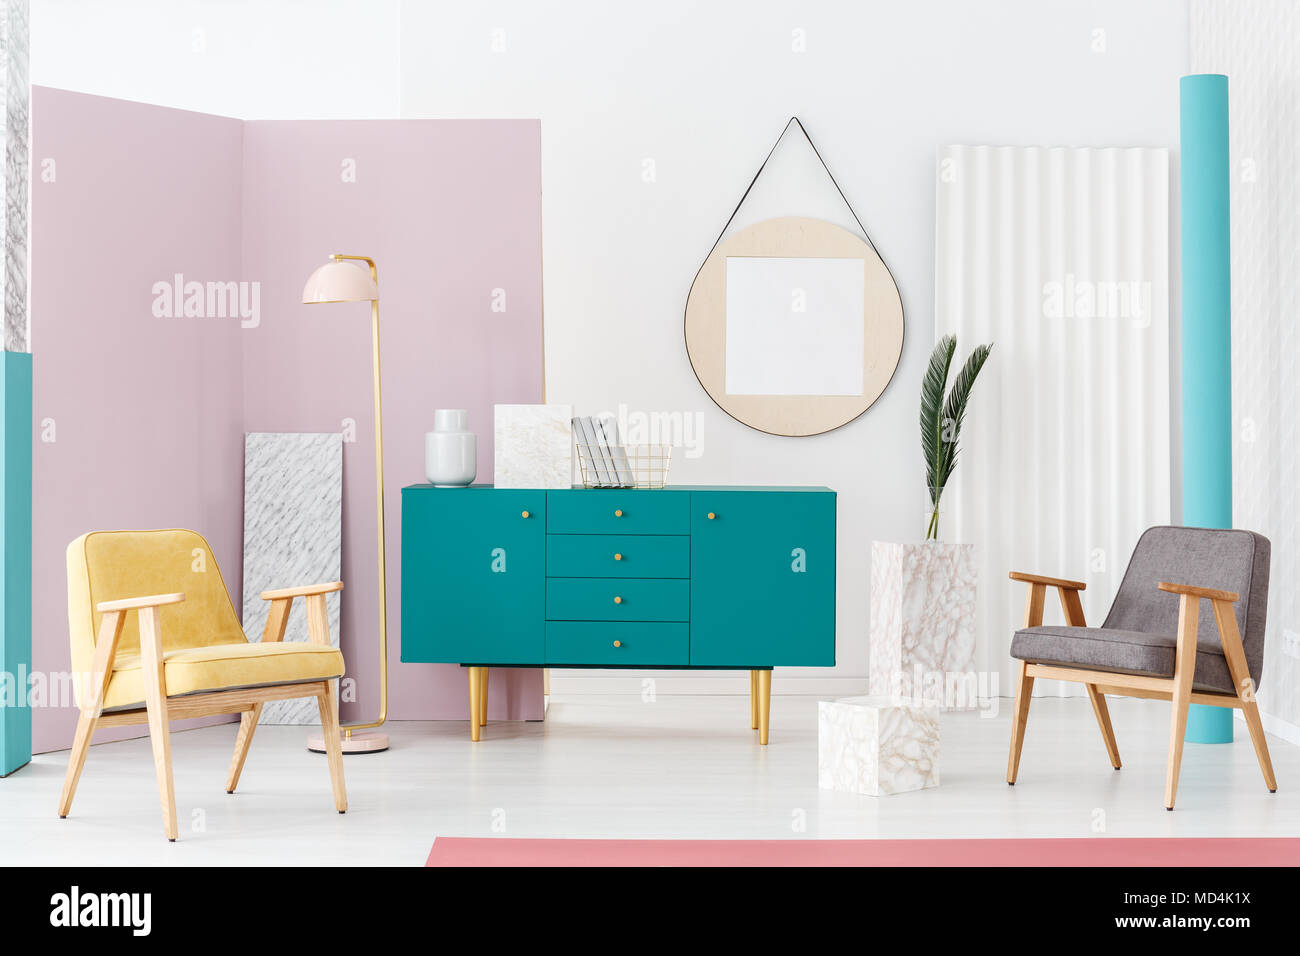 Stylish Furniture Campaign Idea For A Modern Living Room Interior With Pastel Colors Turquoise Blue Scandinavian Style Sideboard And Elegant Decorati Stock Photo Alamy